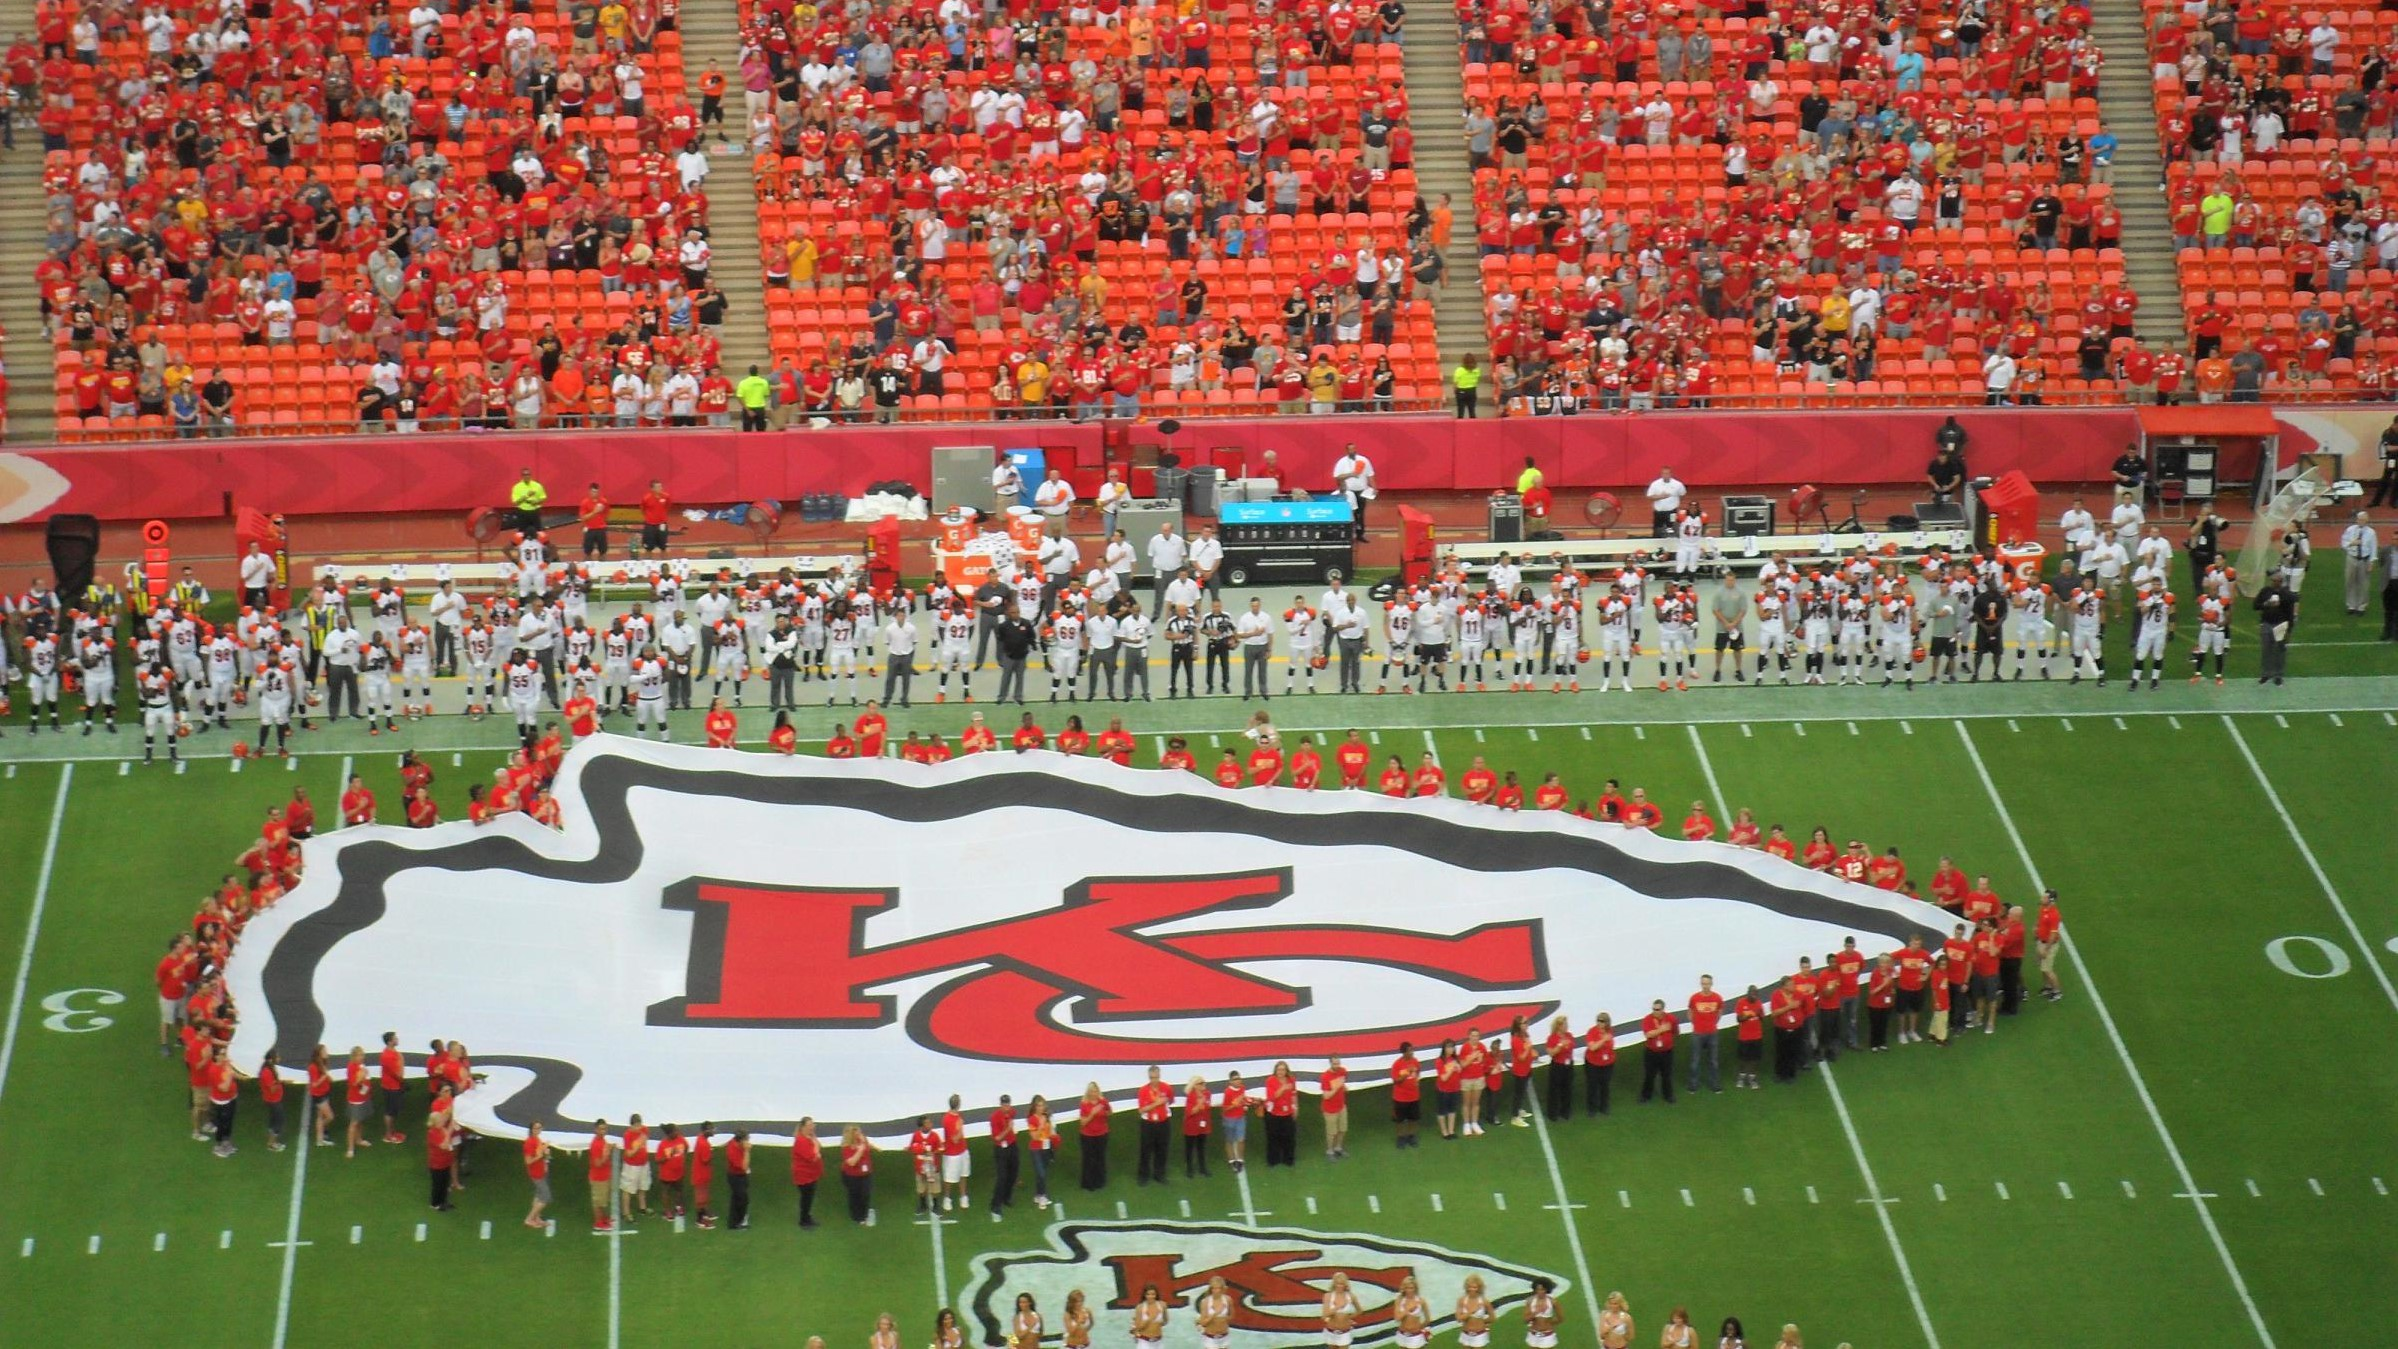 Kansans won't be able to legally bet on the Chiefs this Super Bowl, but maybe next year. (File photo by Greg Echlin)